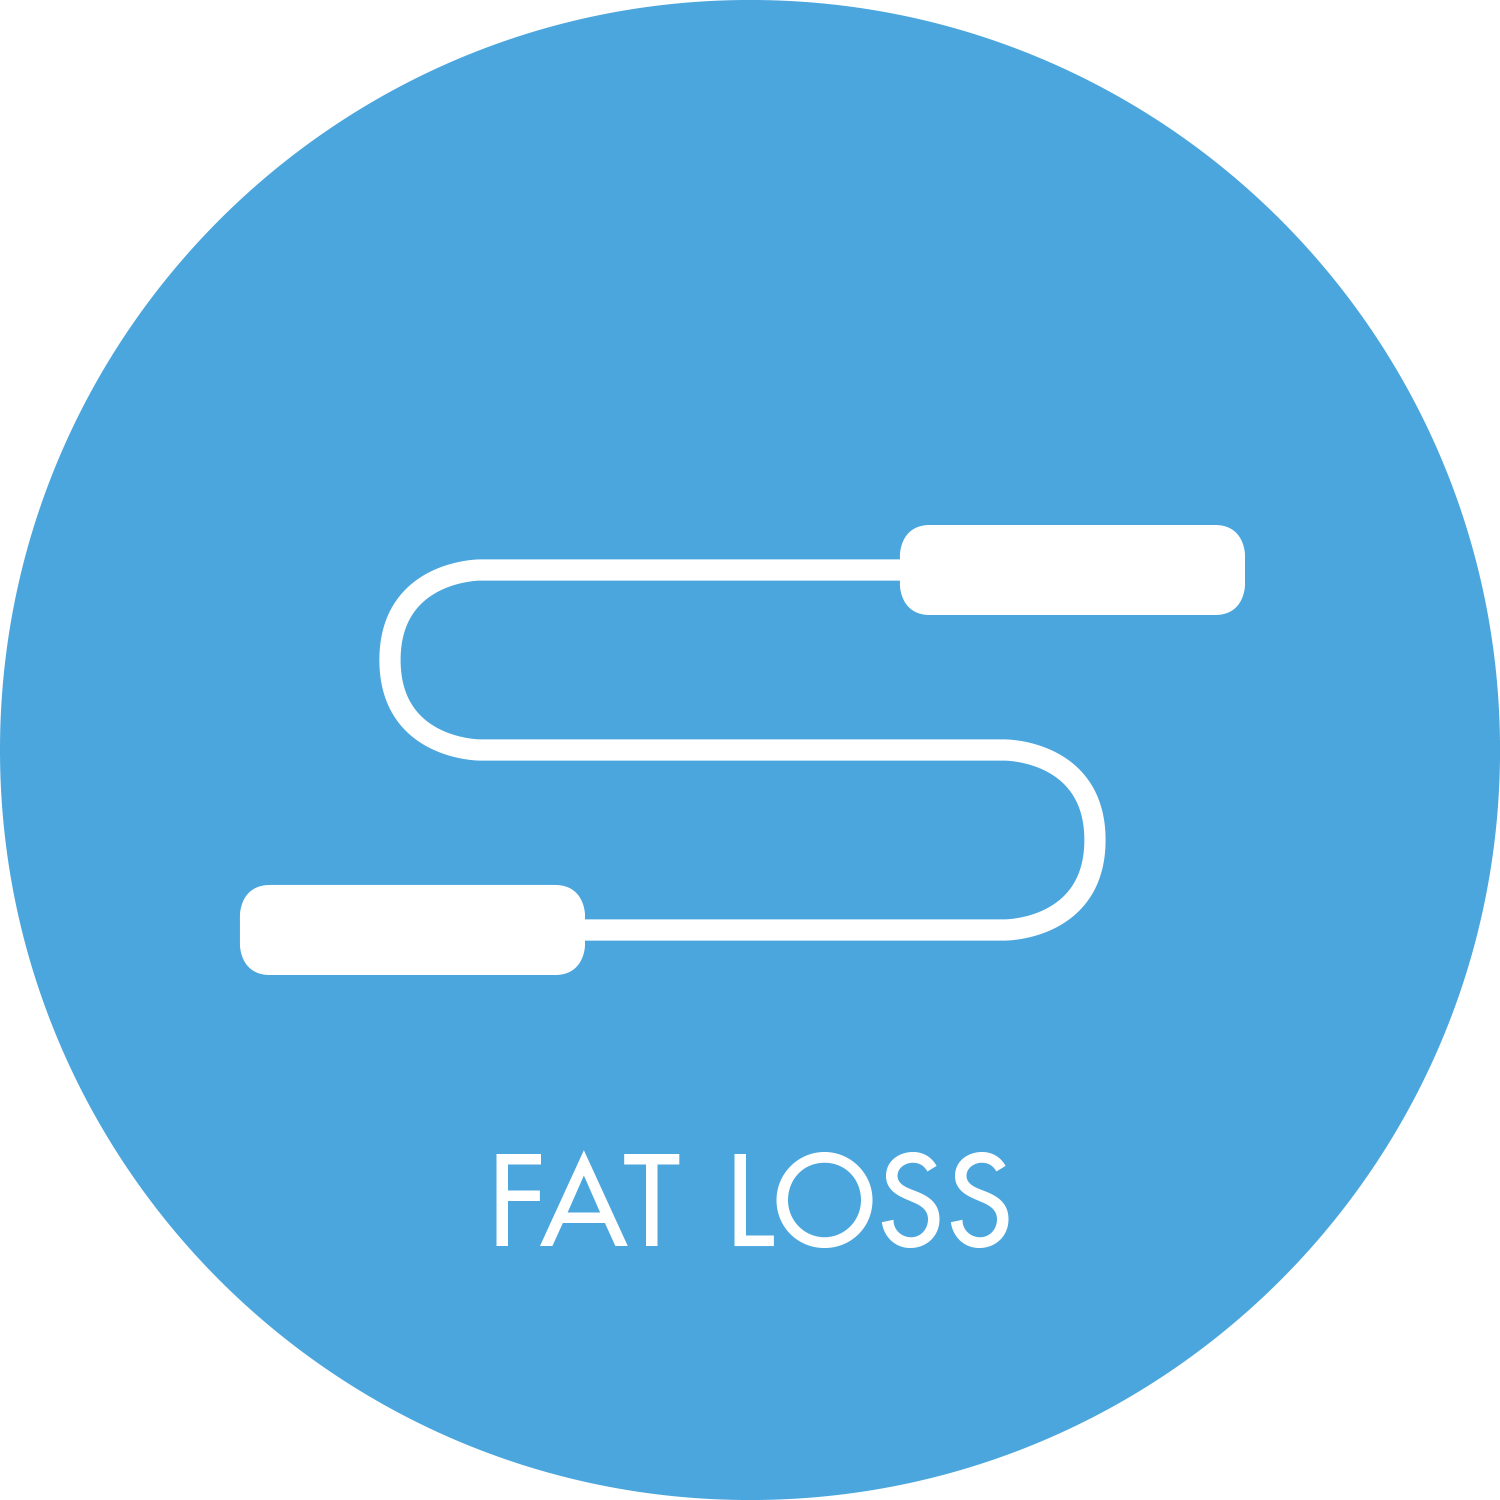 Circle_Icon_Text_Package_Fat_Loss.png